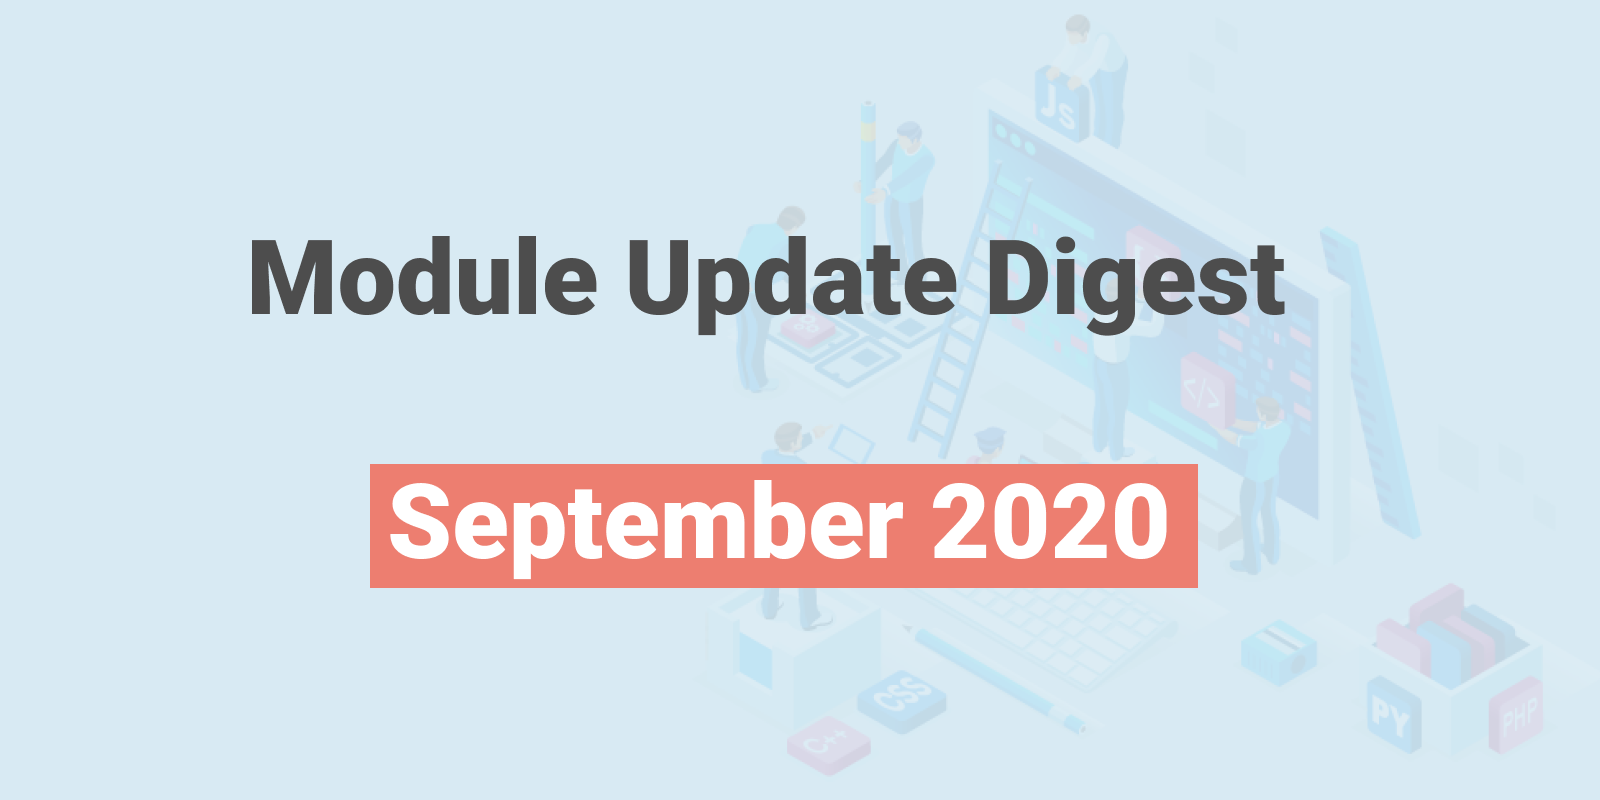 Module Update Digest: September 2020